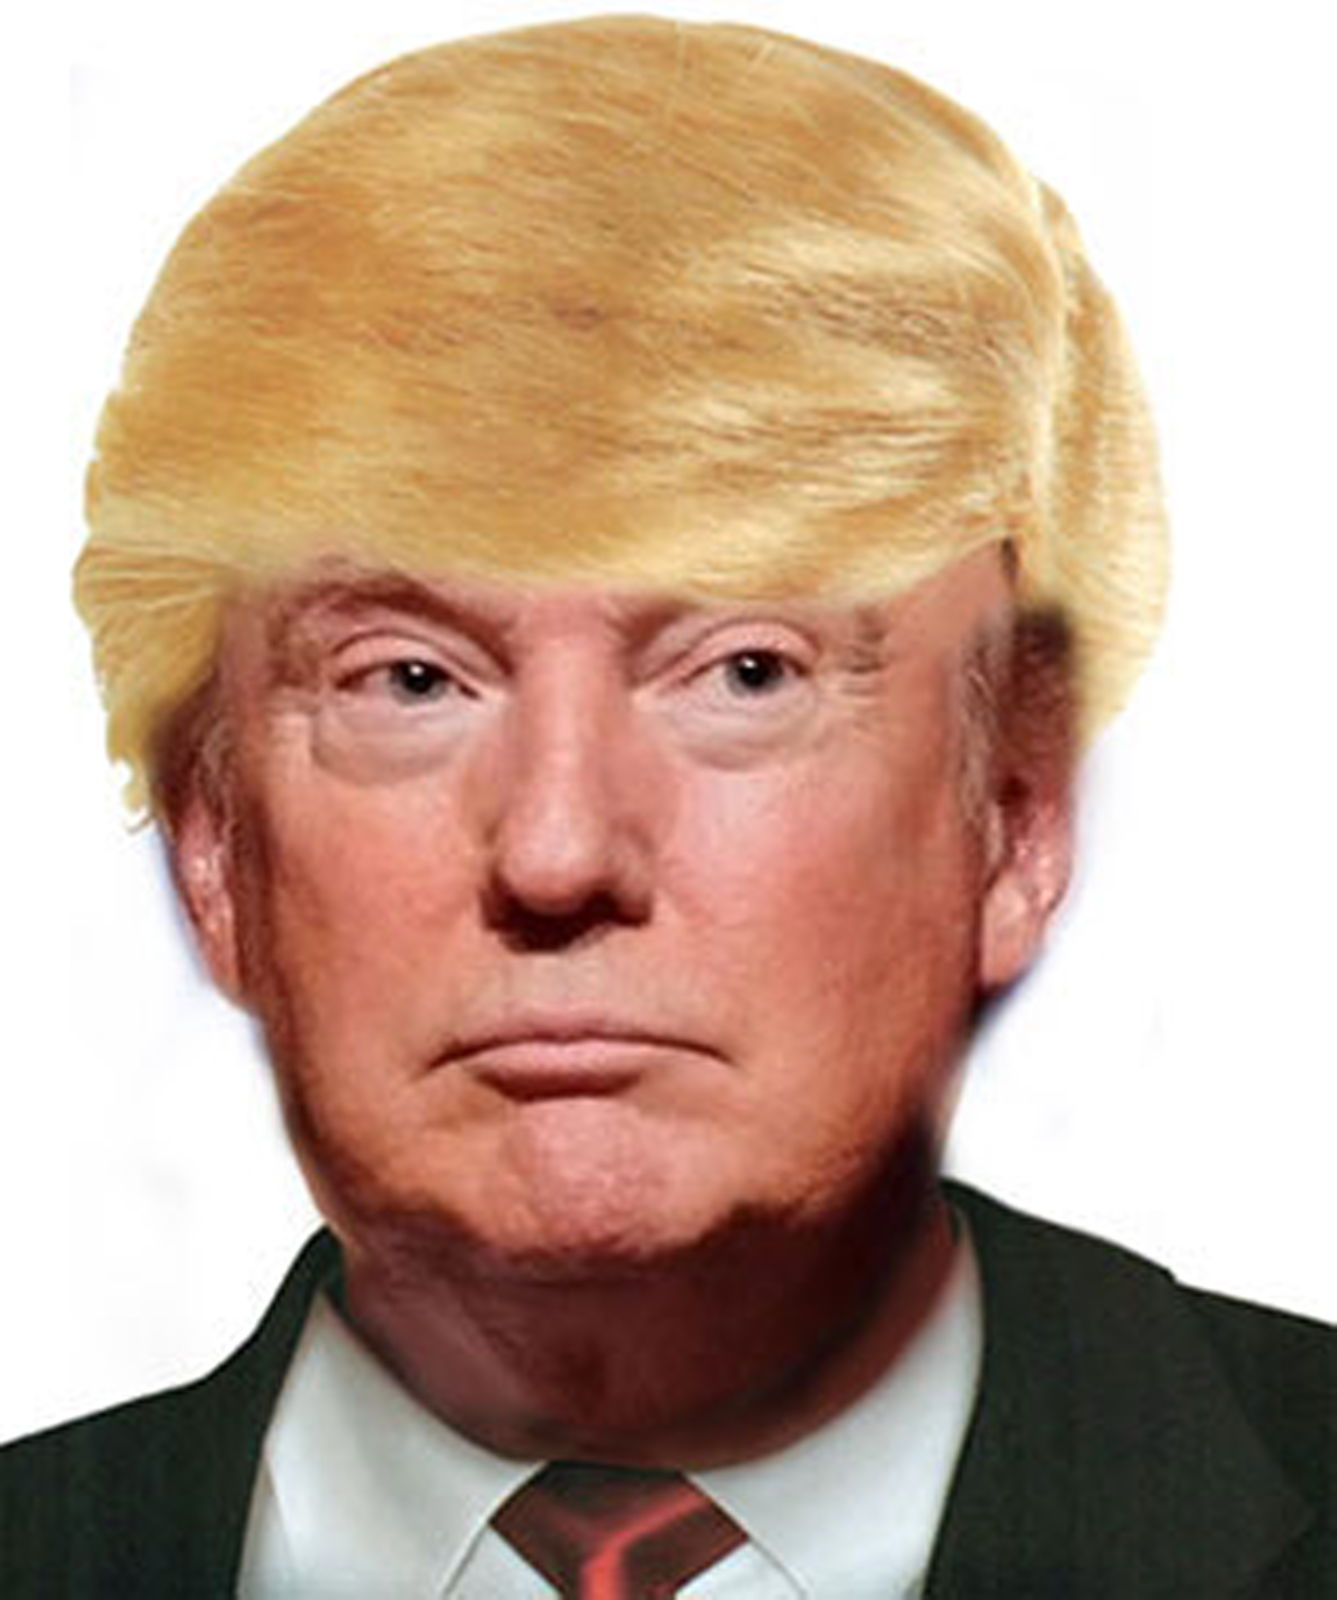 Donald Trump Wig Costume Blonde Comb Over Wig Hair Mr